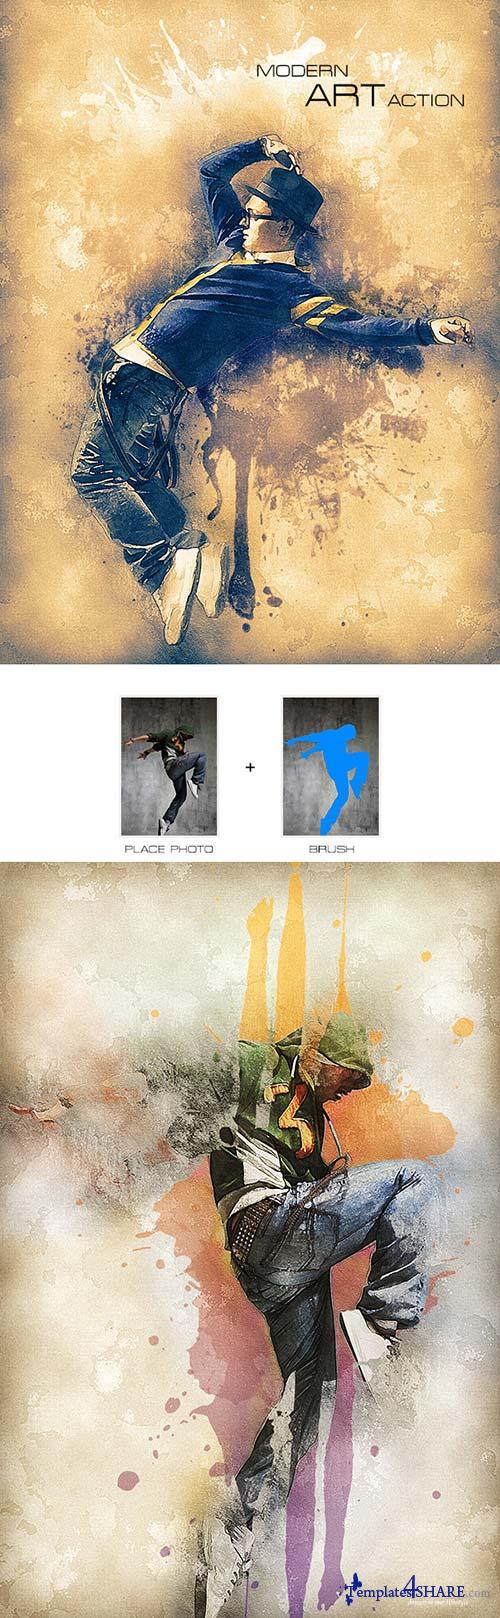 GraphicRiver Modern Art Action